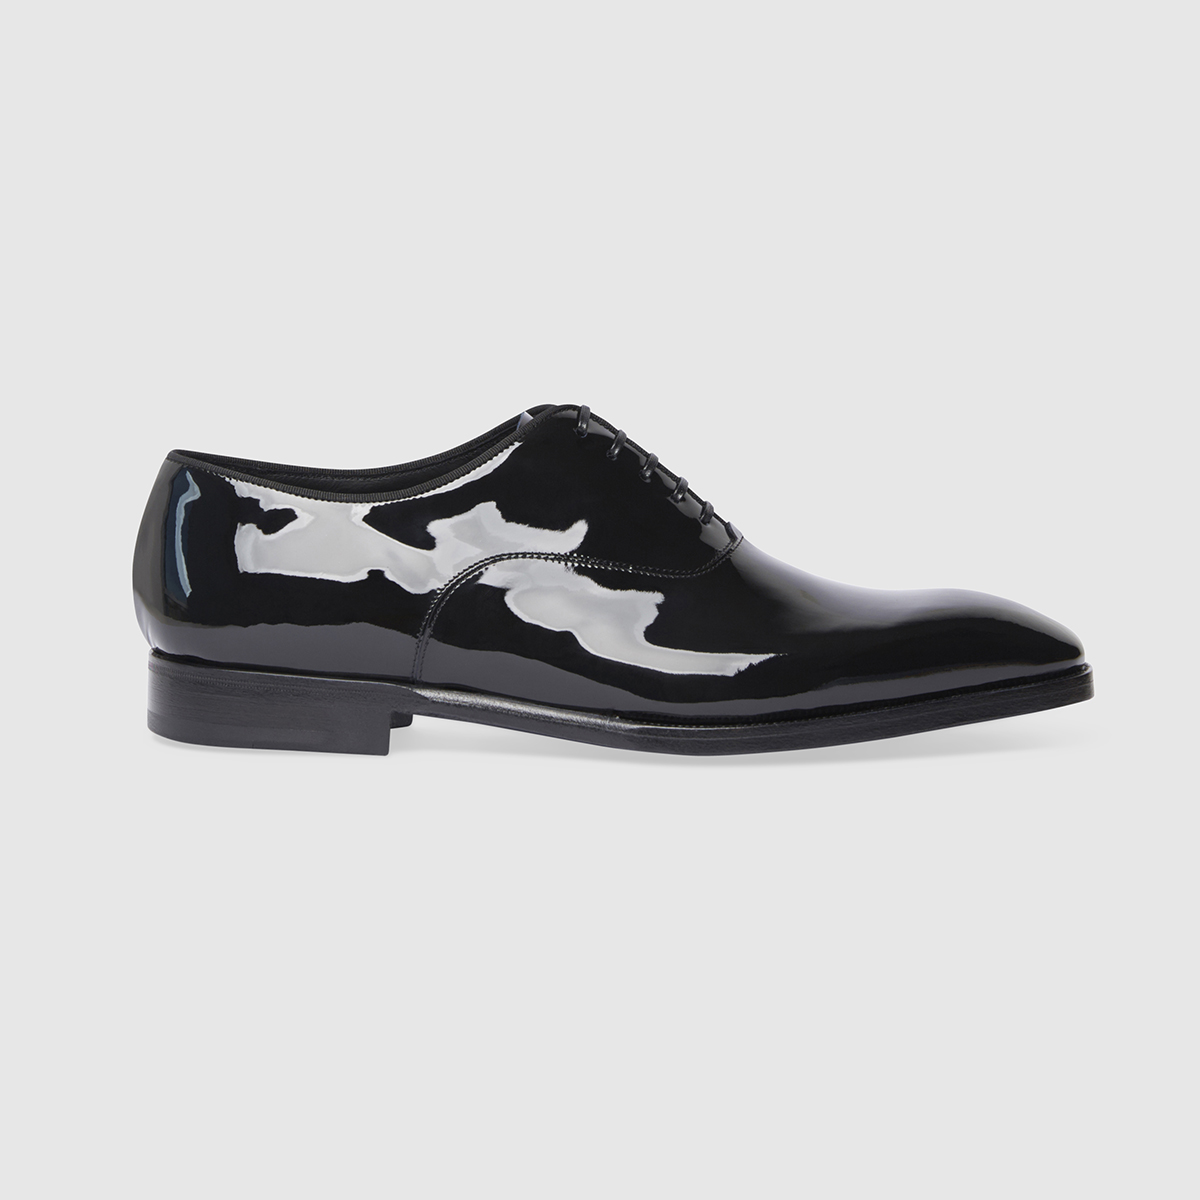 Oxford Shoe in Black Patent Calf Leather